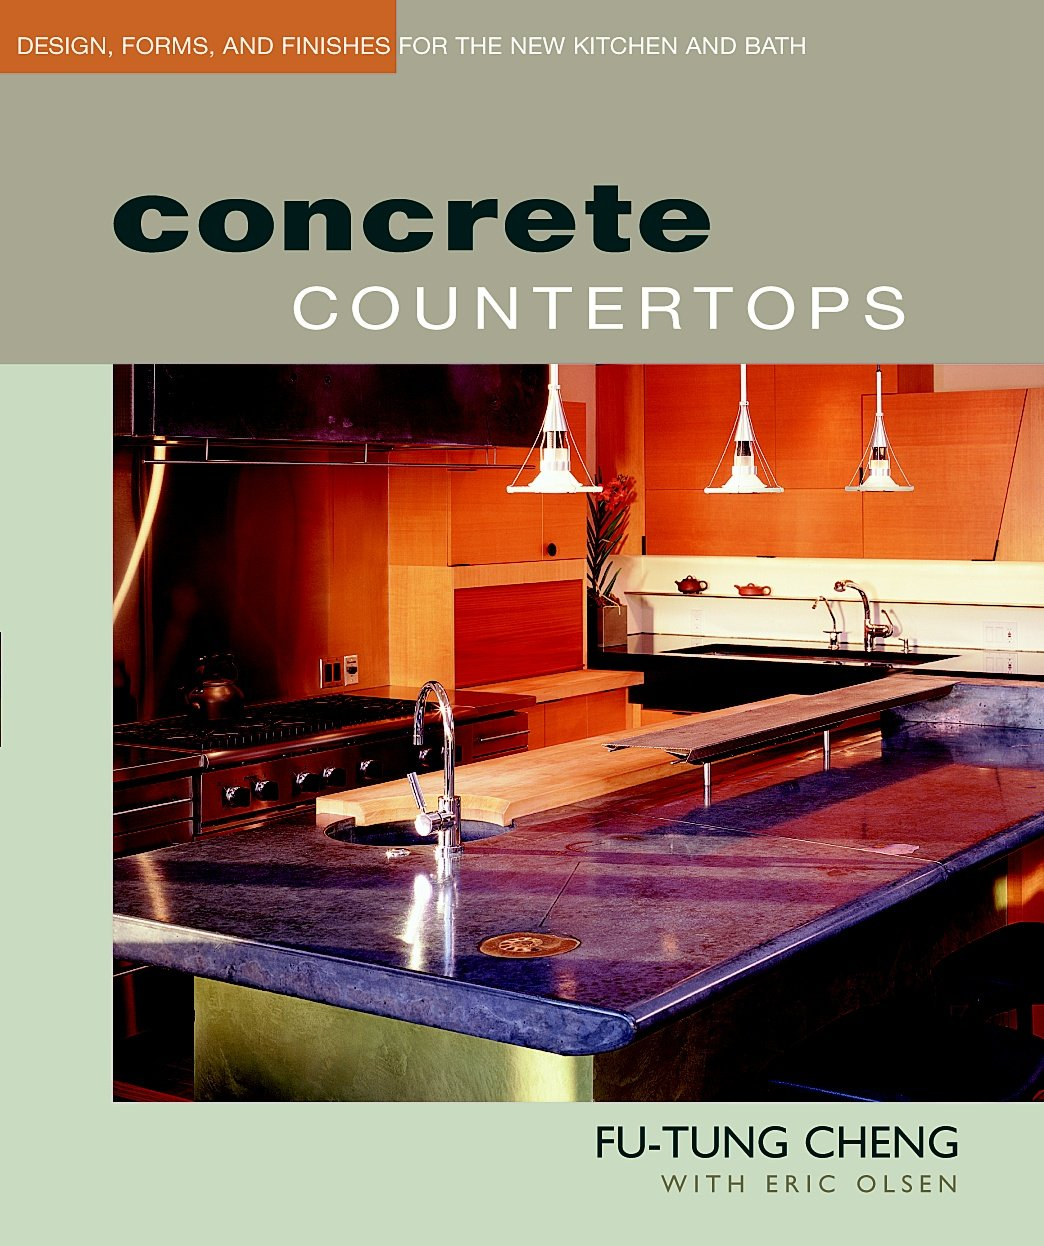 Concrete Countertops Design Finishes Kitchen